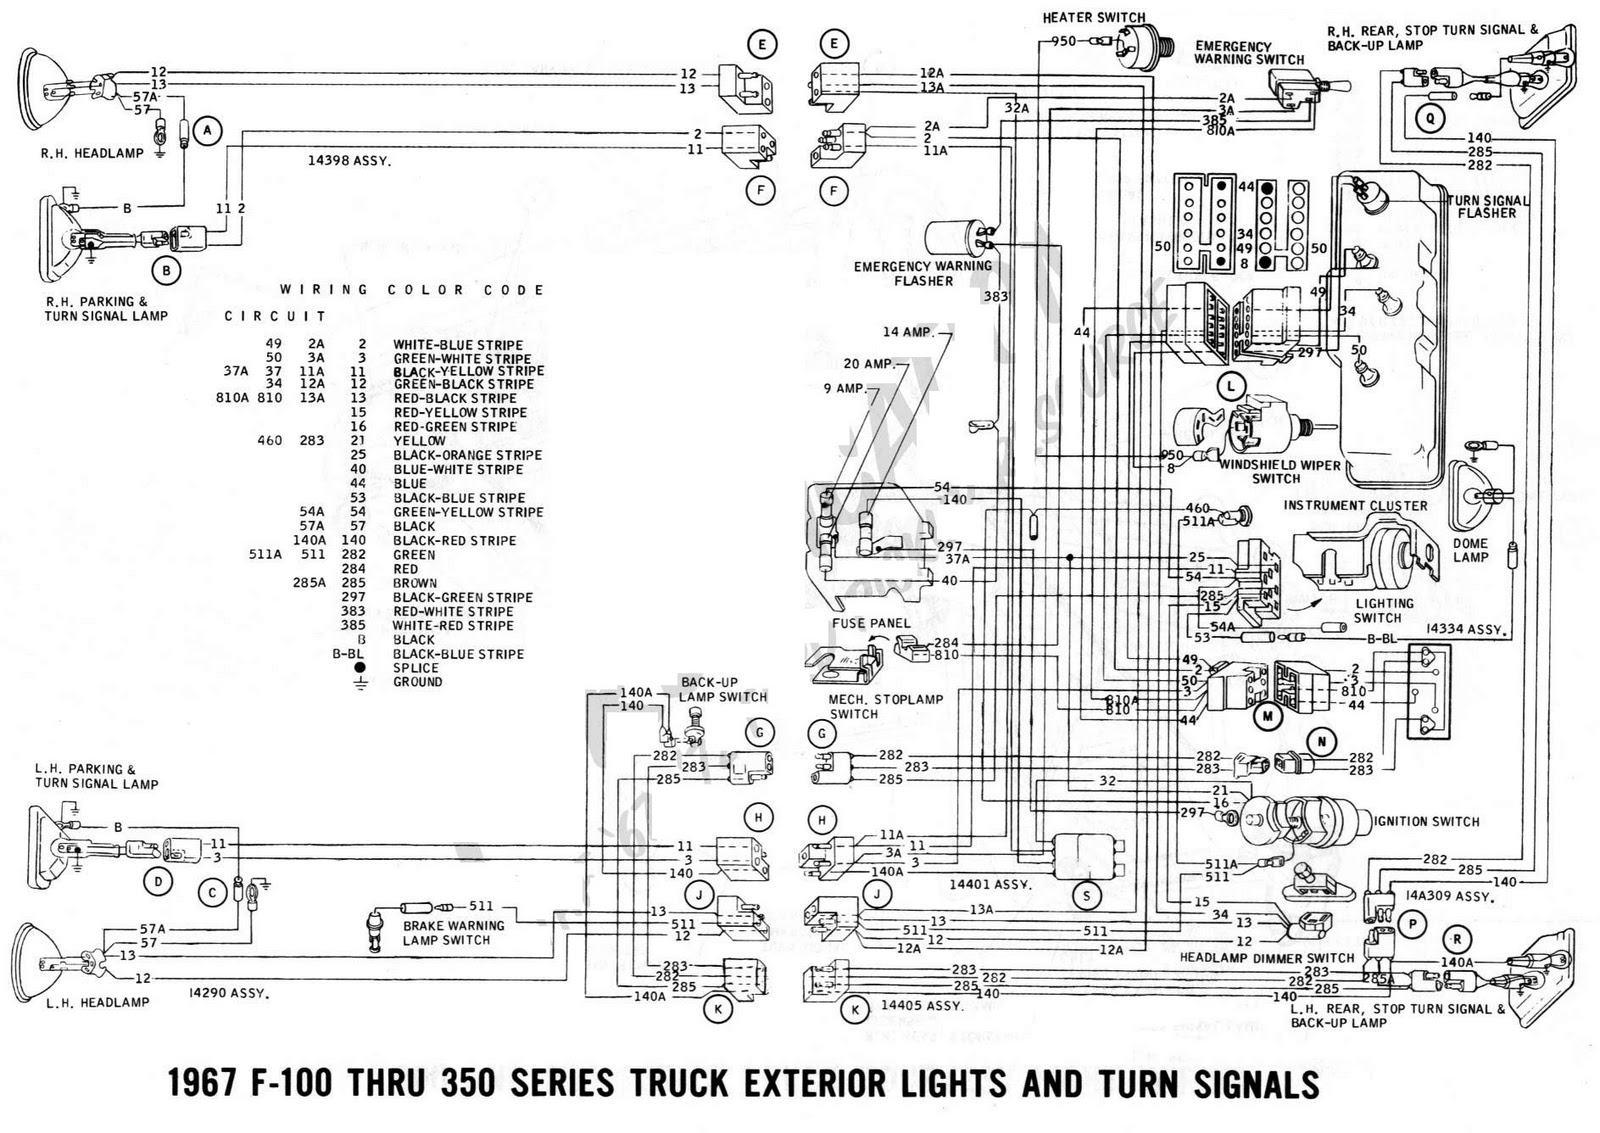 1967 Ford F 100350  plete Exterior on 1956 chevy ignition switch diagram